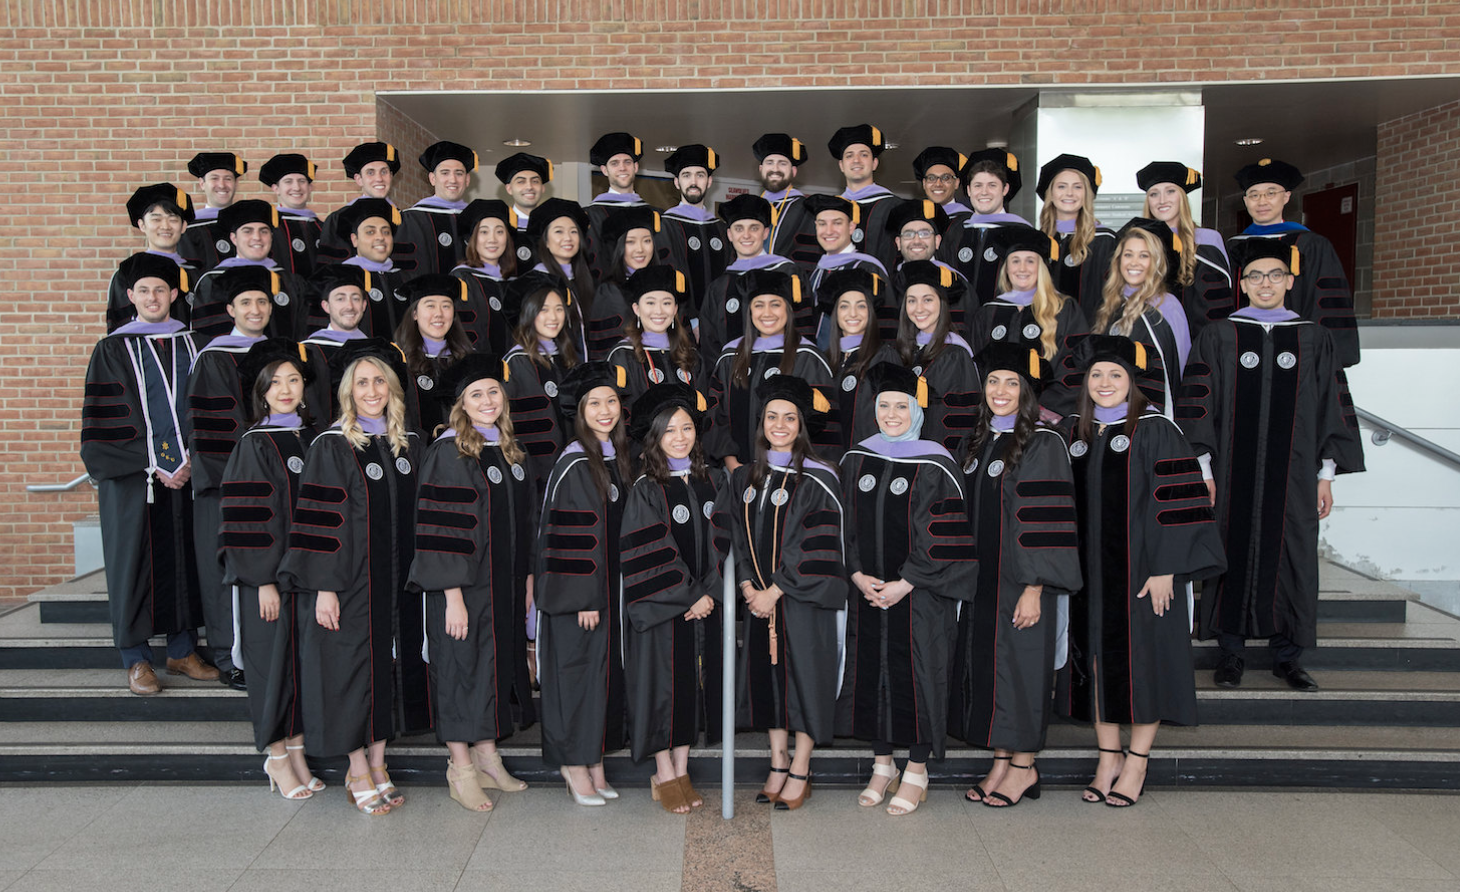 Stony Brook University School of Dental Medicine Class of 2019 Official Convocation Ceremony Class Photo